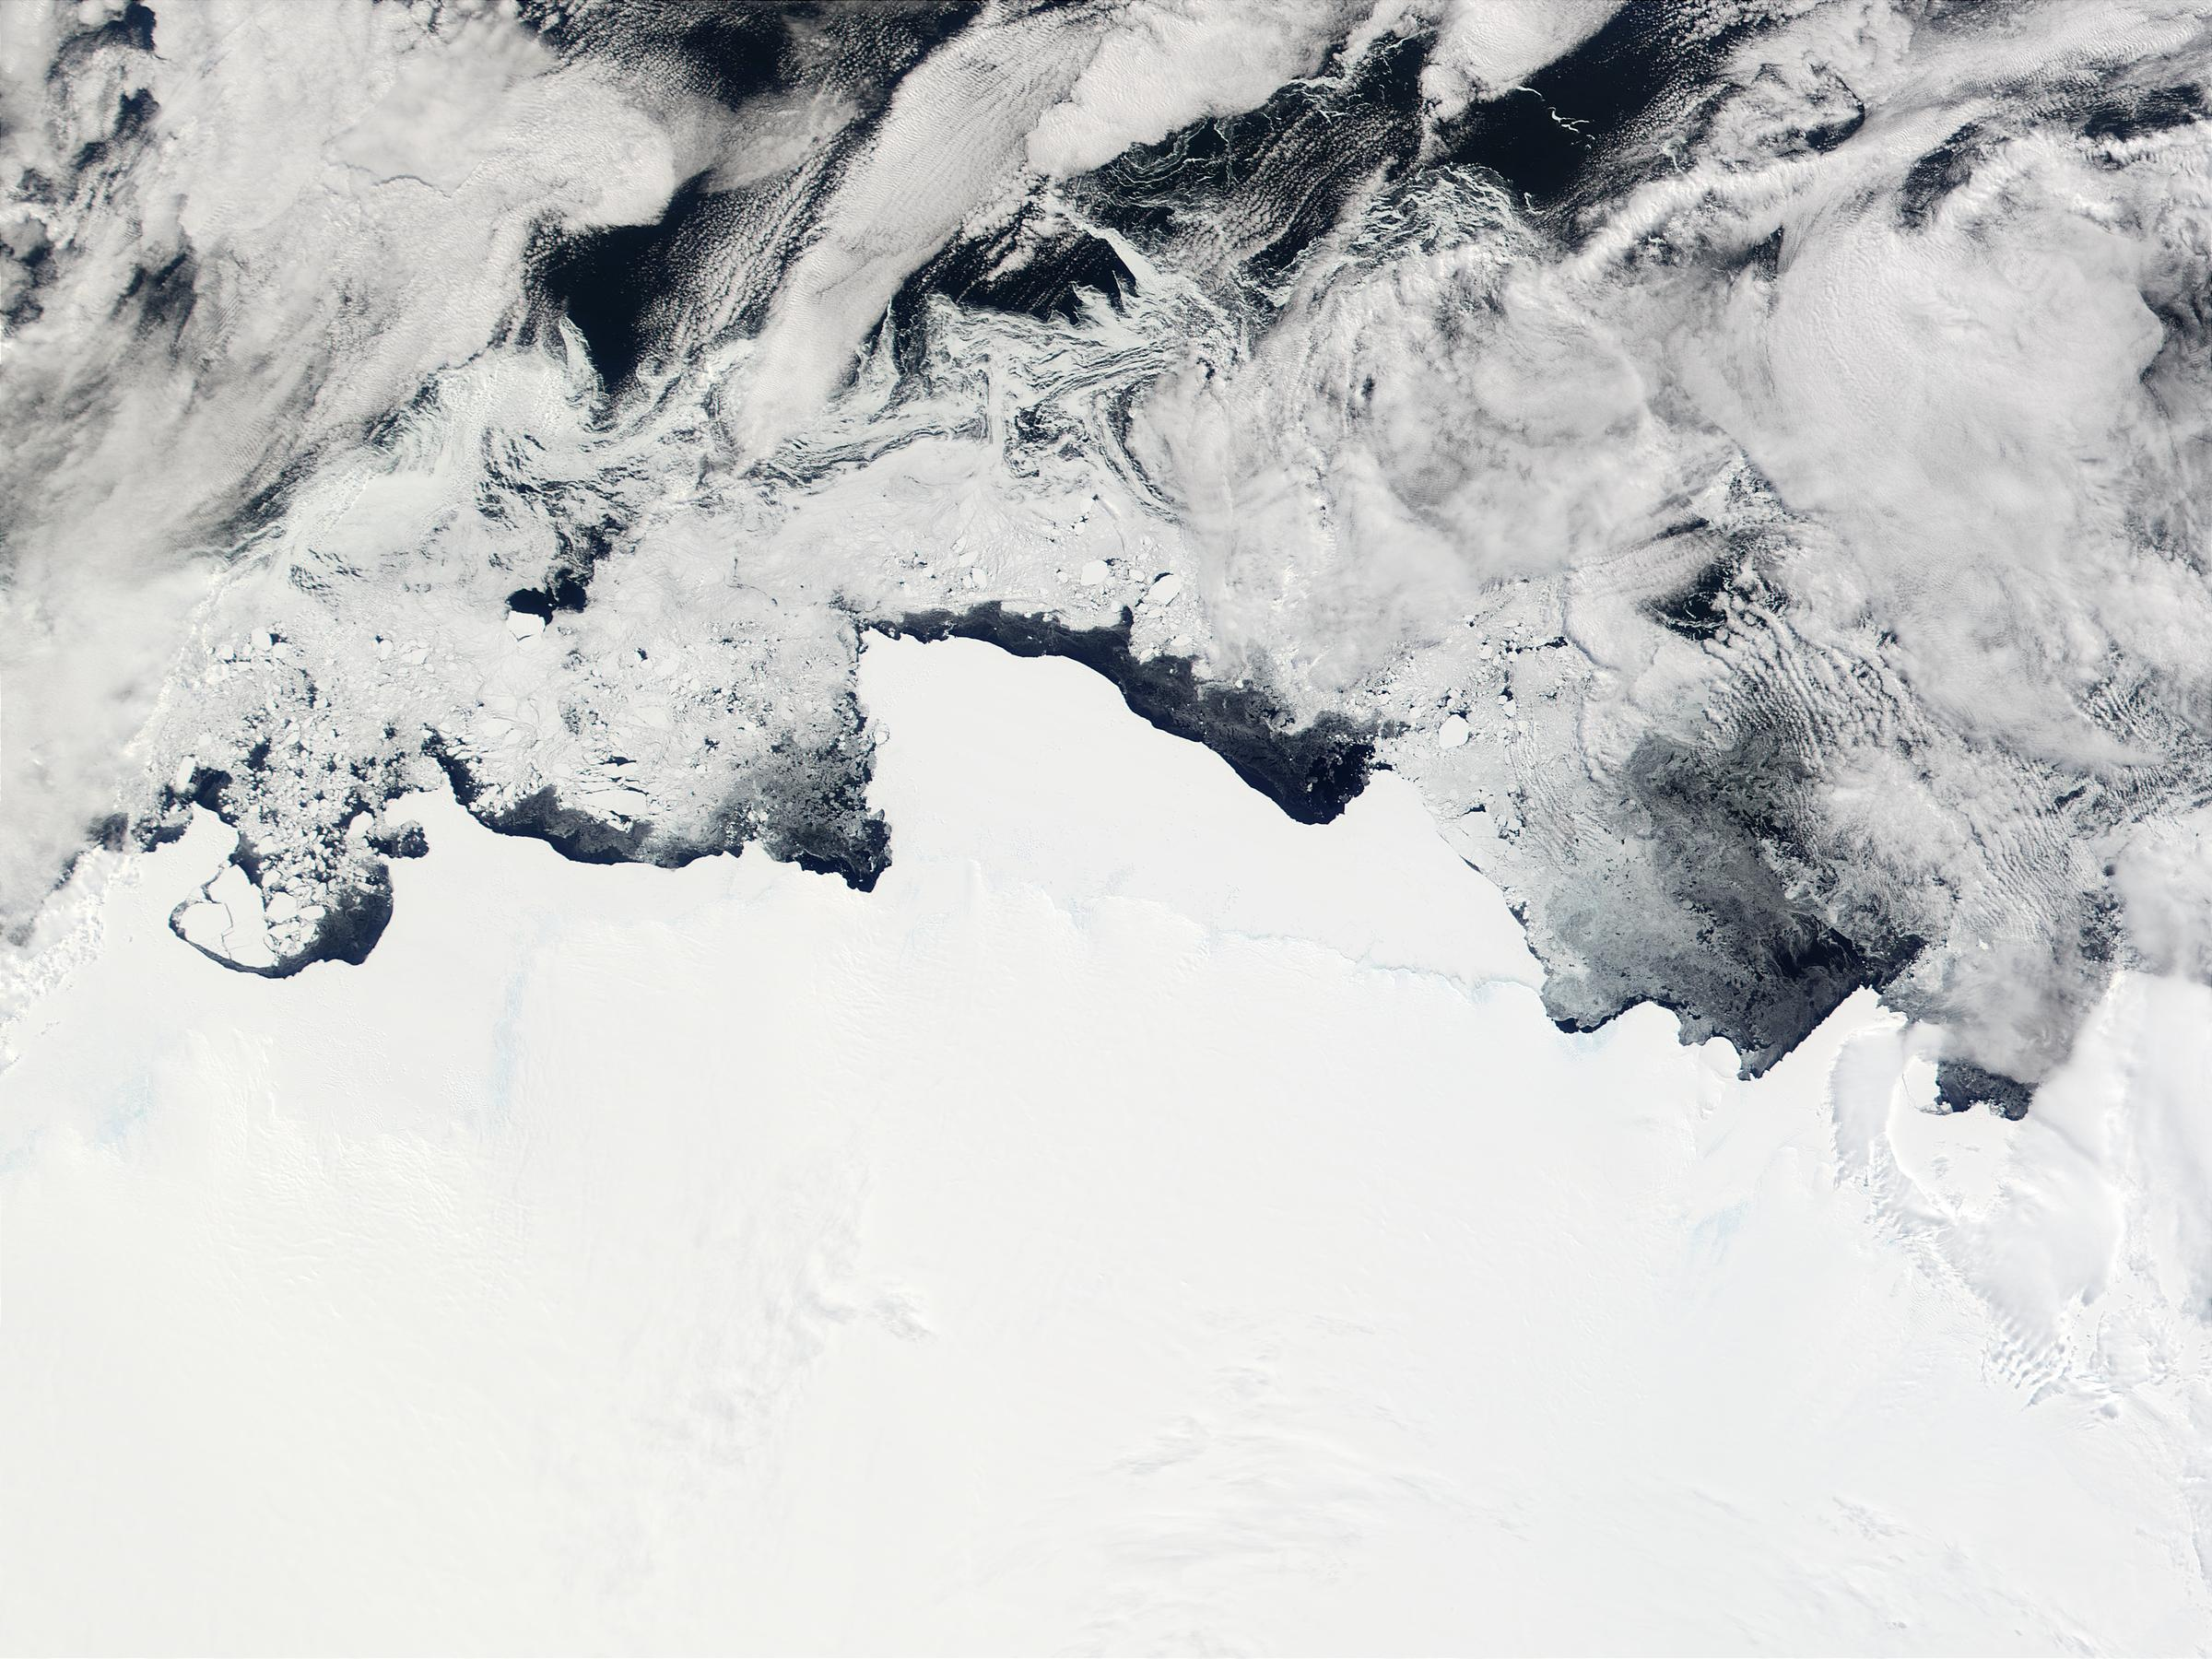 Banzare Coast, Clarie Coast, Adelie Coast, and George V Coast, Antarctica - related image preview